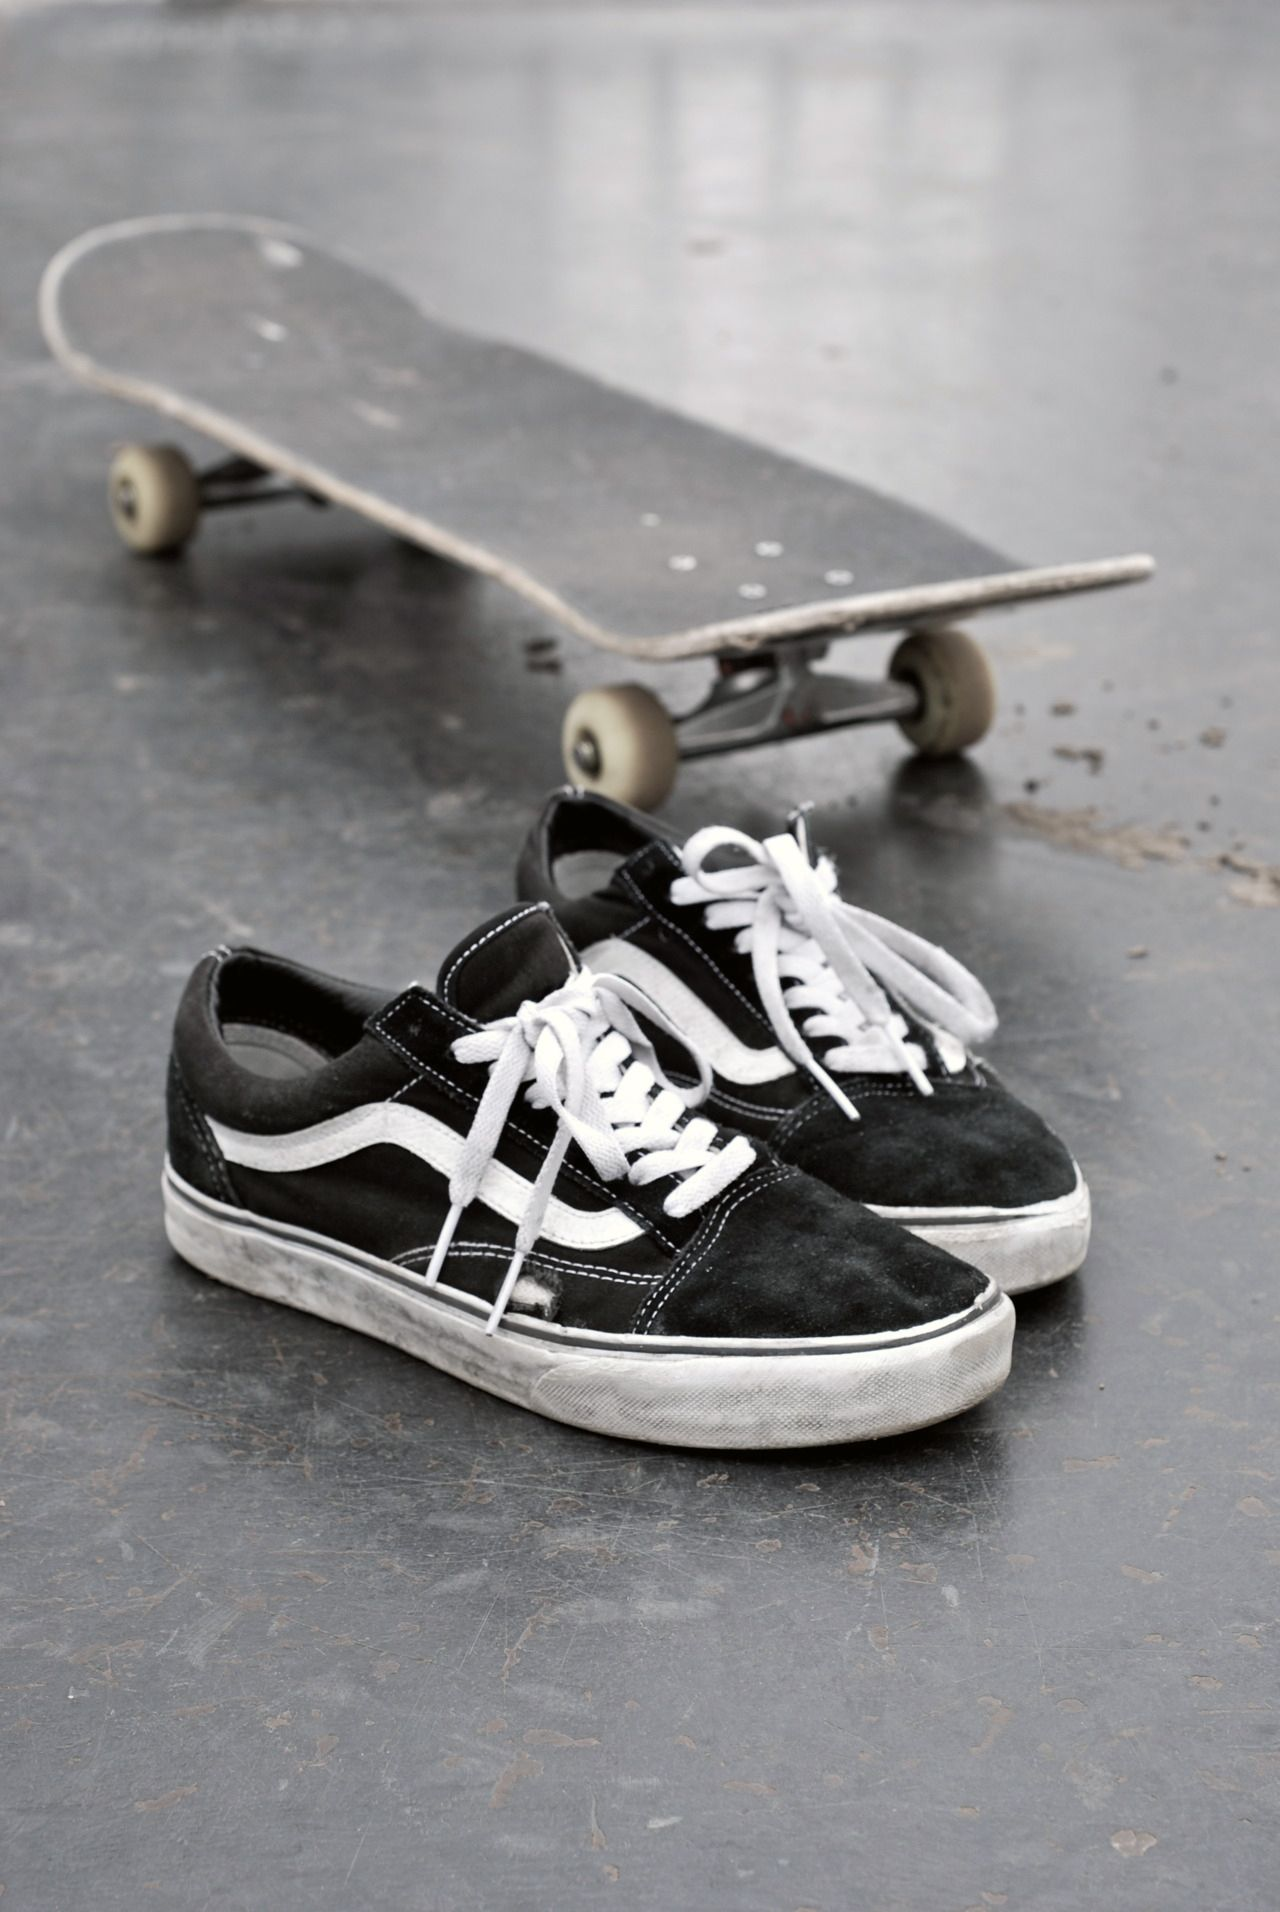 Leave You Vans And Board At My House Please And Thank You 3 Met